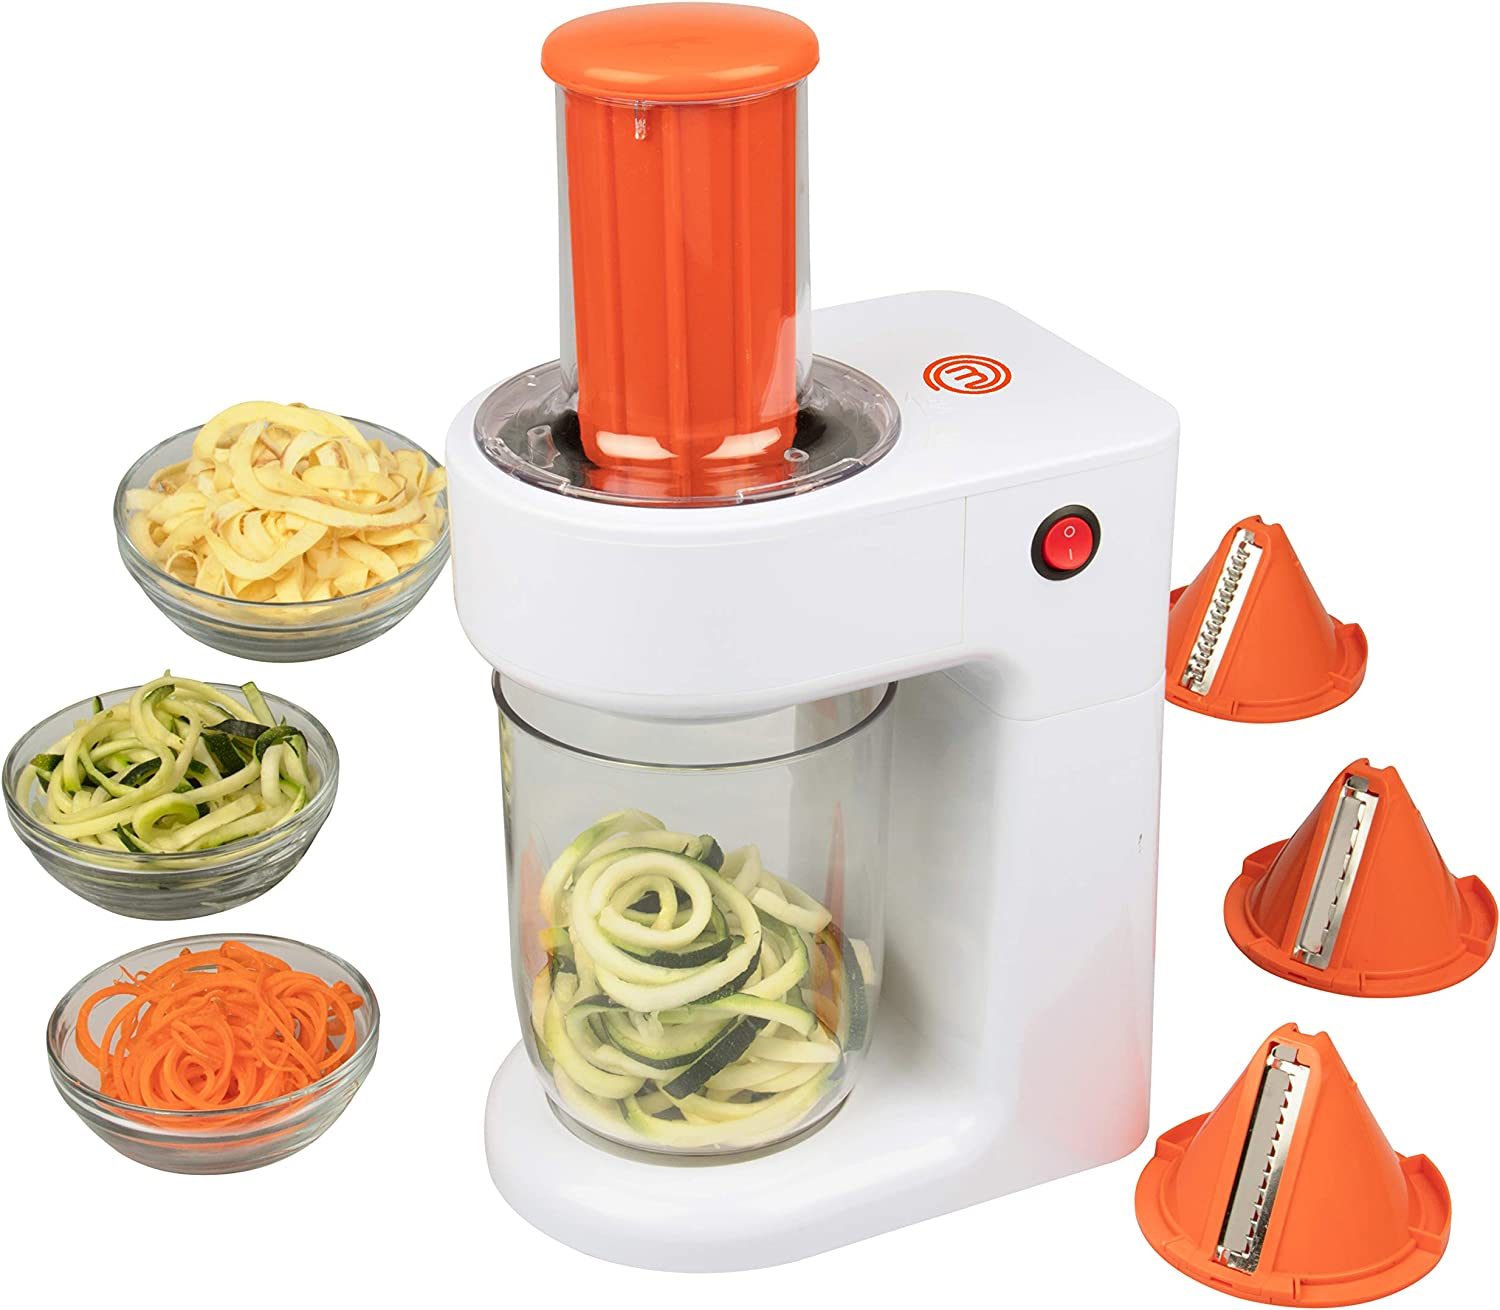 MasterChef Electric Spiralizer- 3-in-1 Vegetable Noodle Pasta Maker w 3 Different Zoodle Slicing Styles and XL Hopper- FREE Recipe Guide